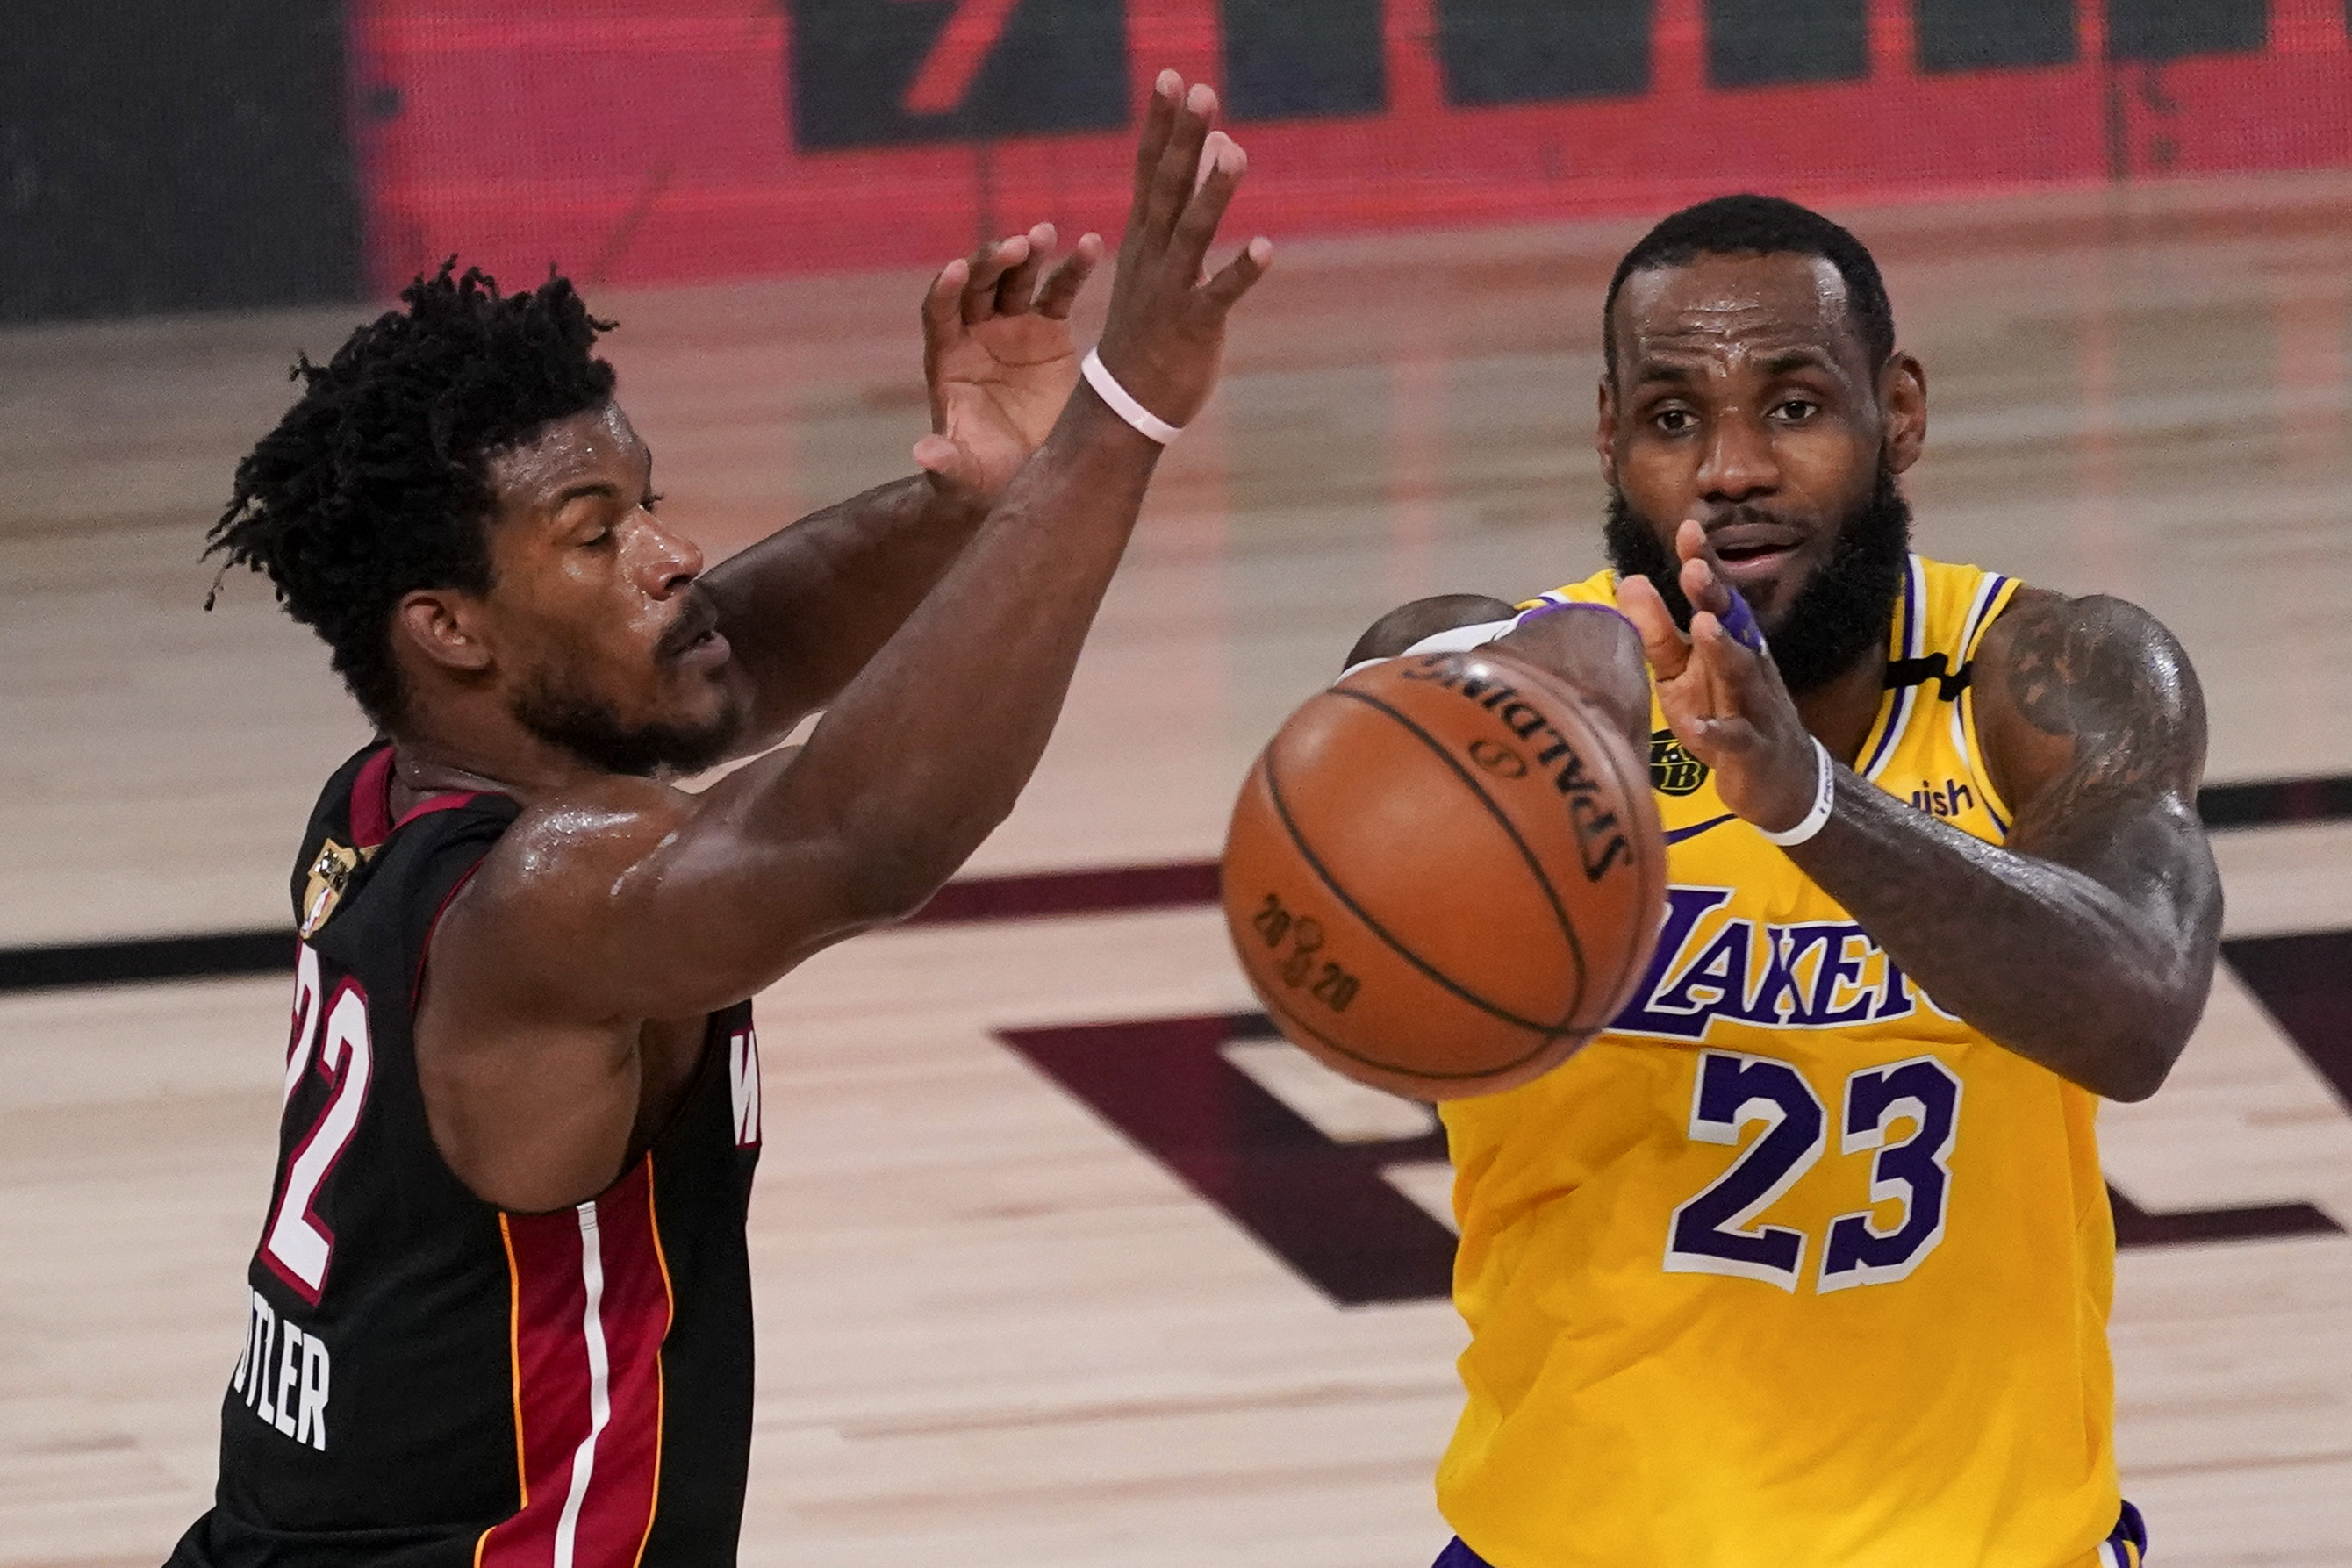 Lakers Vs Heat Live Stream Start Time Tv Channel How To Watch Nba Finals 2020 Game 5 Masslive Com